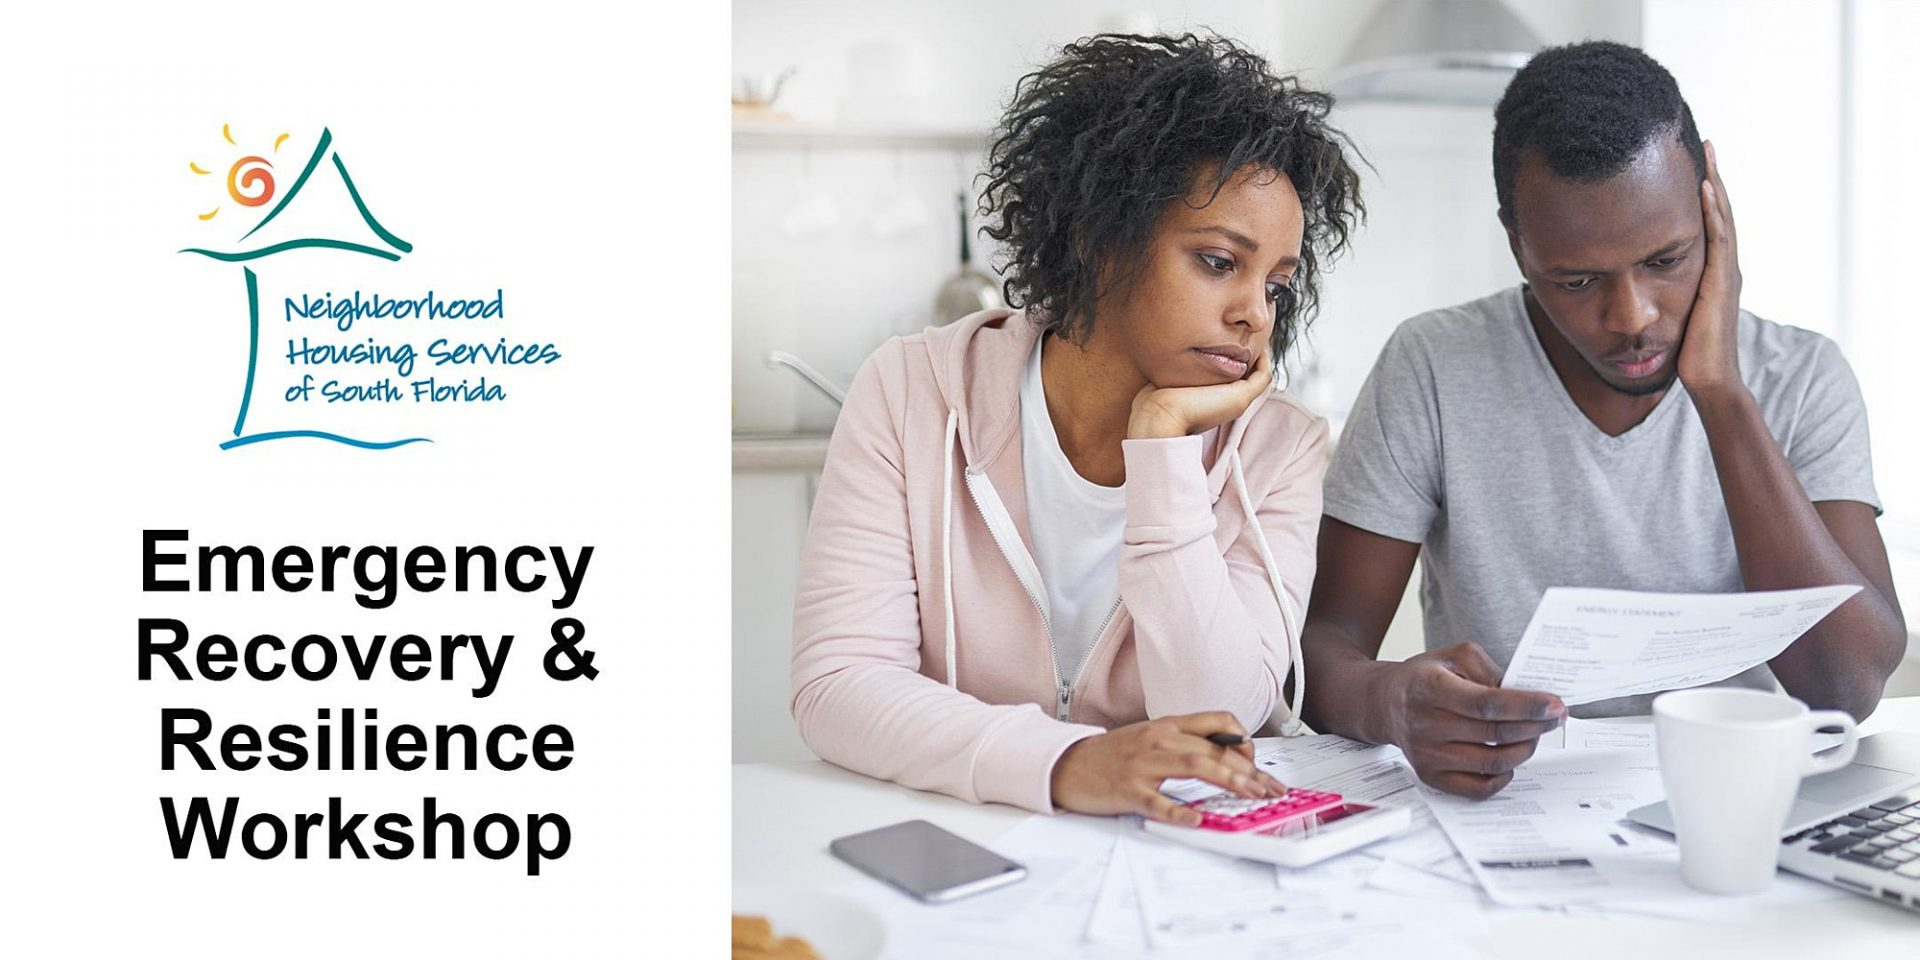 Emergency Recovery & Resilience Workshop 4/23/21 (English)